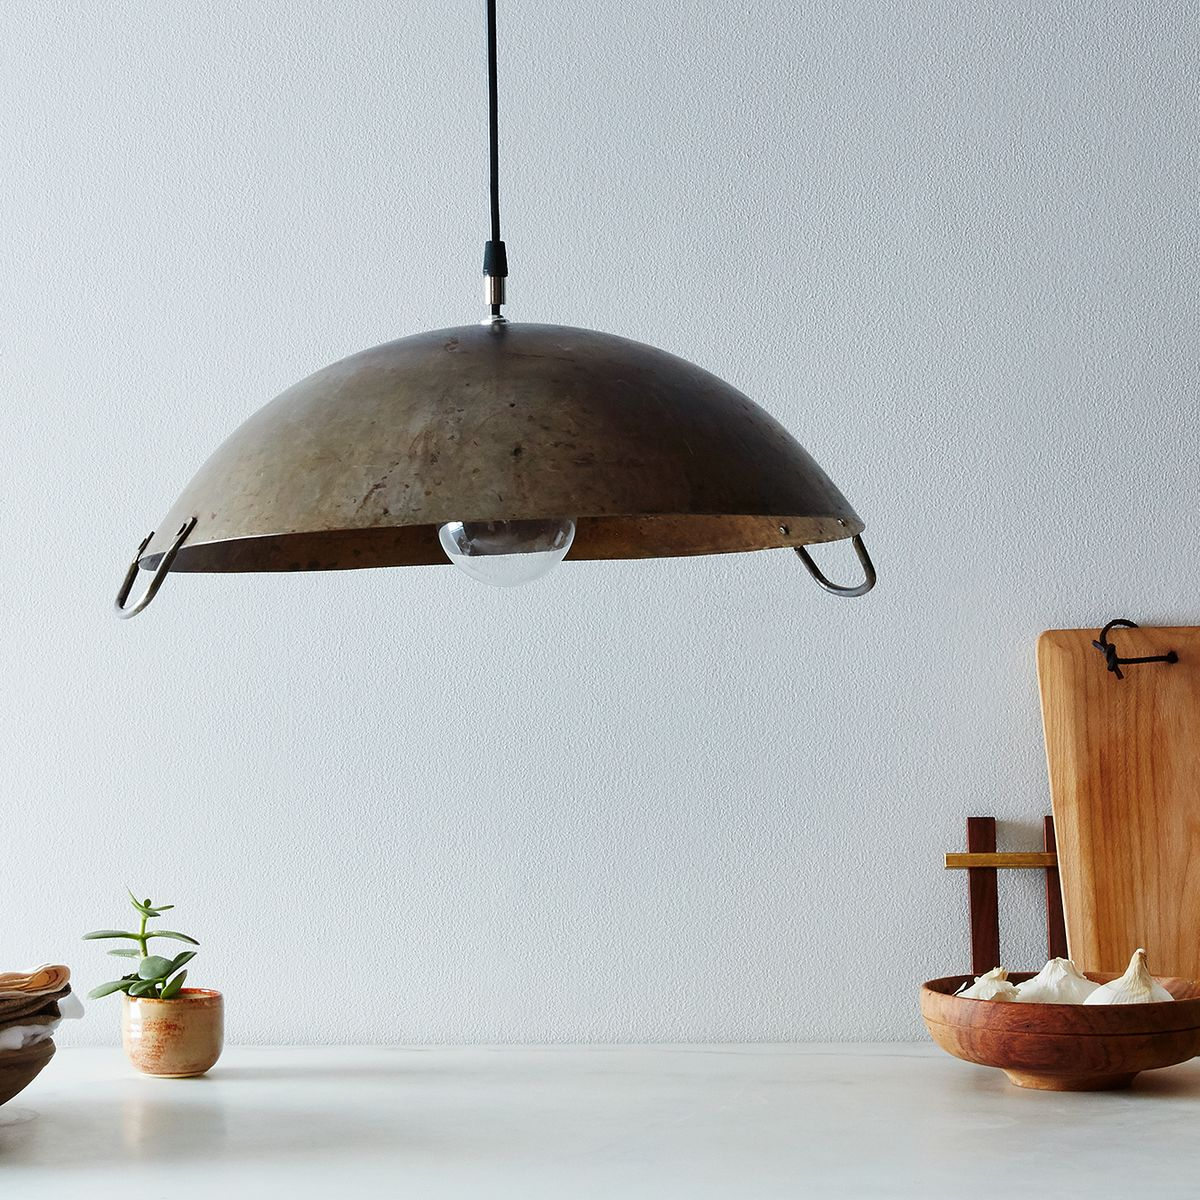 When Life Gives You a Rusty Wok, Make a Lamp